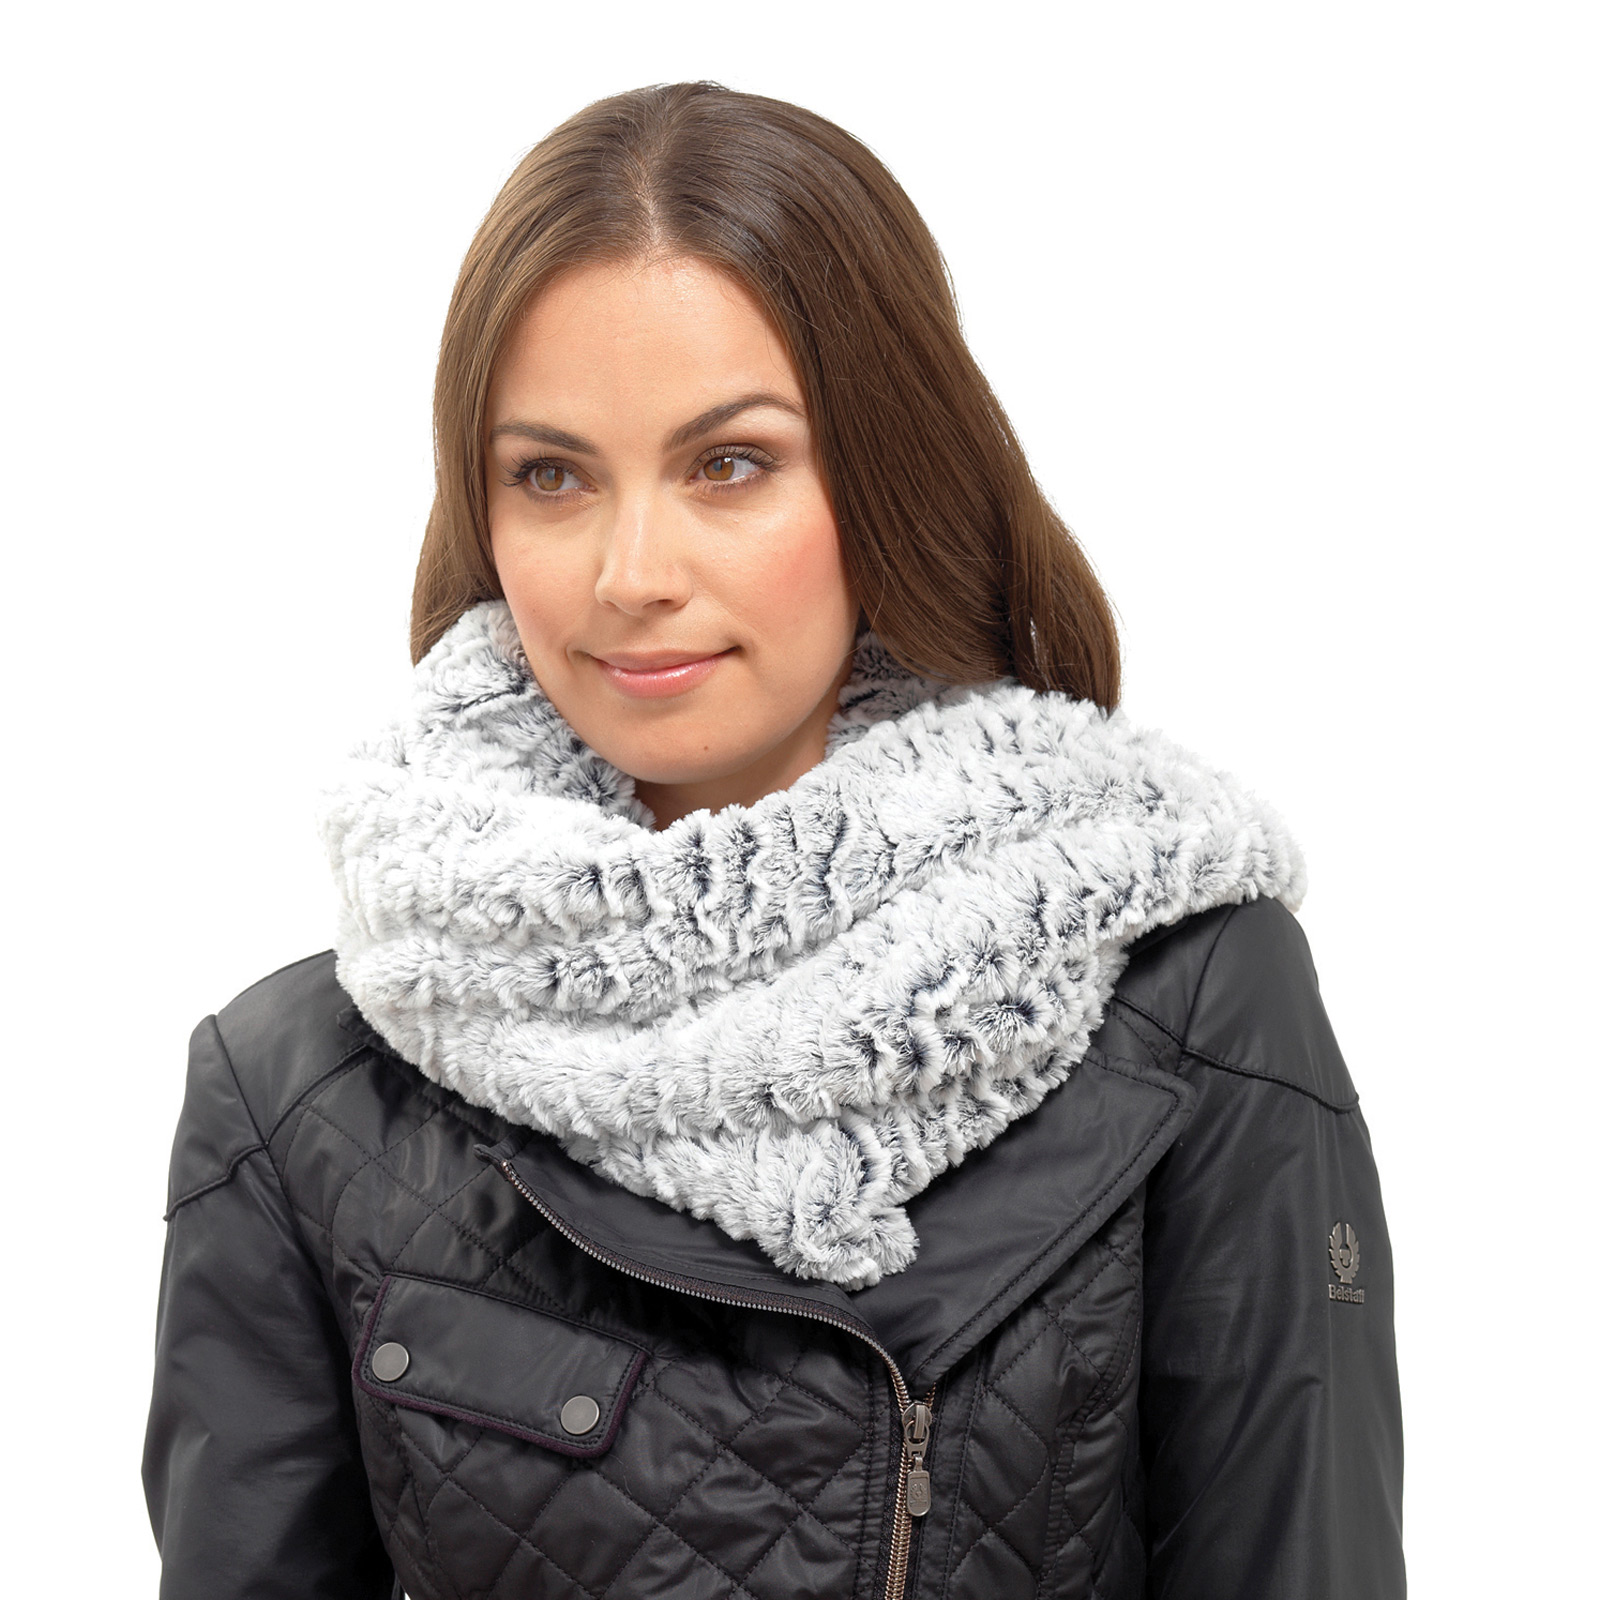 Black Snood Scarf % acrylic Triple layer point Breathable Elastic Protection for the neck / head / ears Our web shop uses cookies to offer a better user experience, if you continue browsing we understand that you accept the use of cookies.